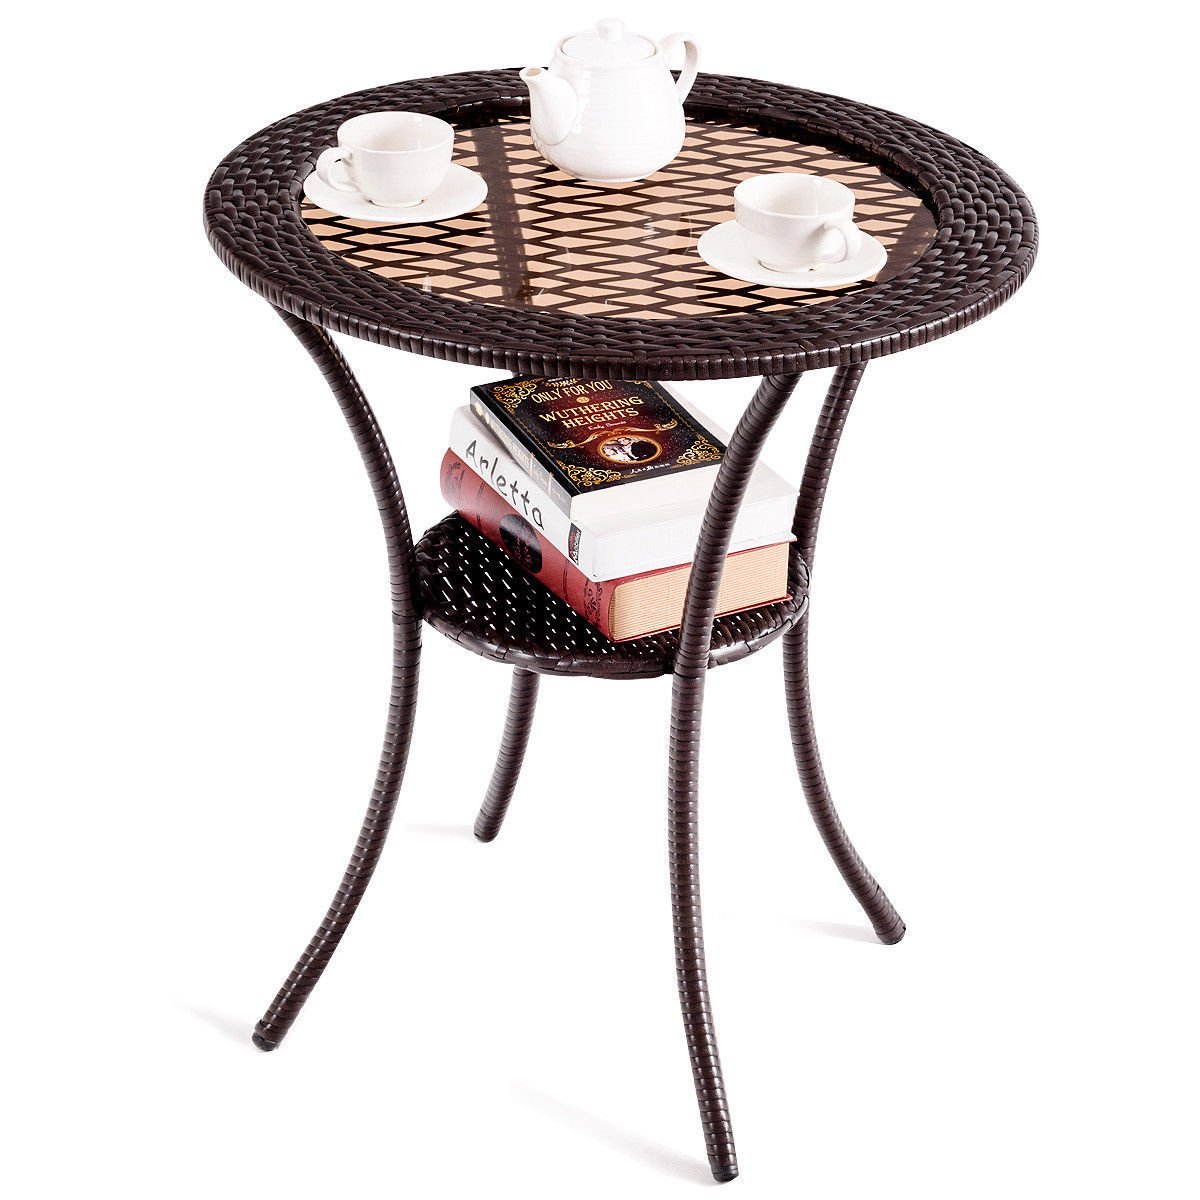 Tremendous Gymax Round Rattan Wicker Coffee Table Glass Top Steel Frame Home Remodeling Inspirations Genioncuboardxyz